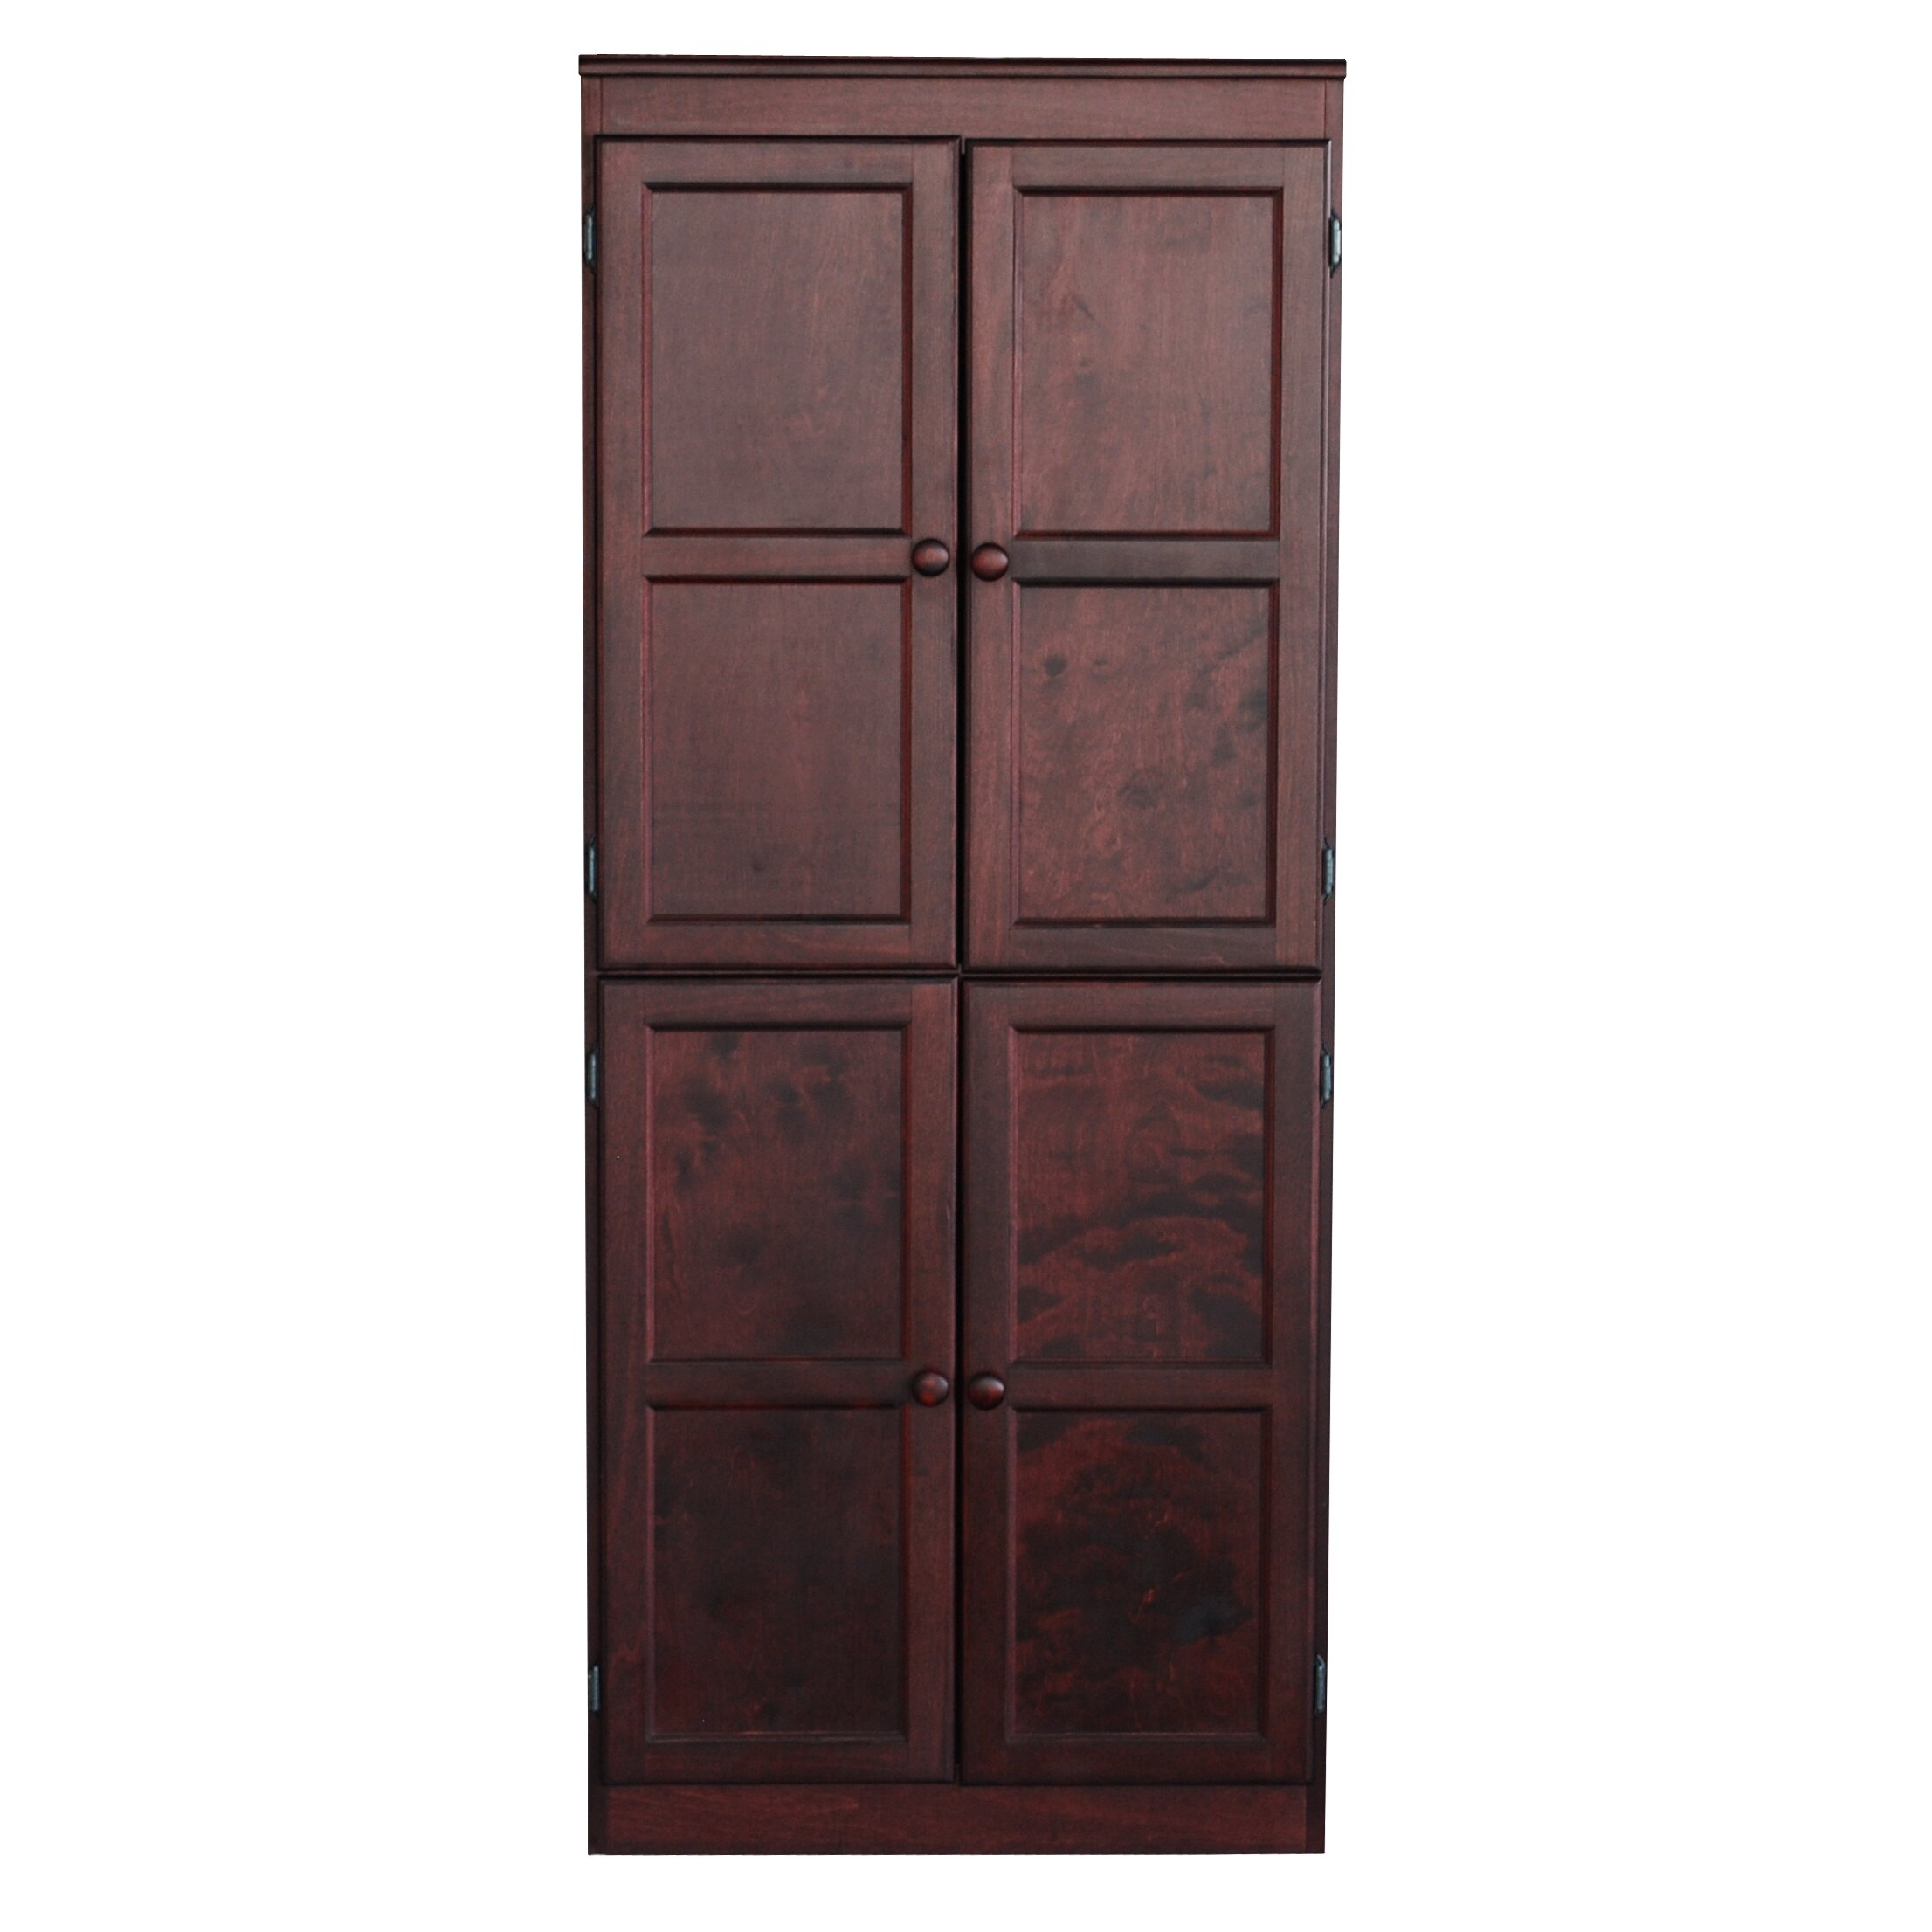 Darby home co kesterson 4 door storage cabinet reviews for 1 door storage cabinet